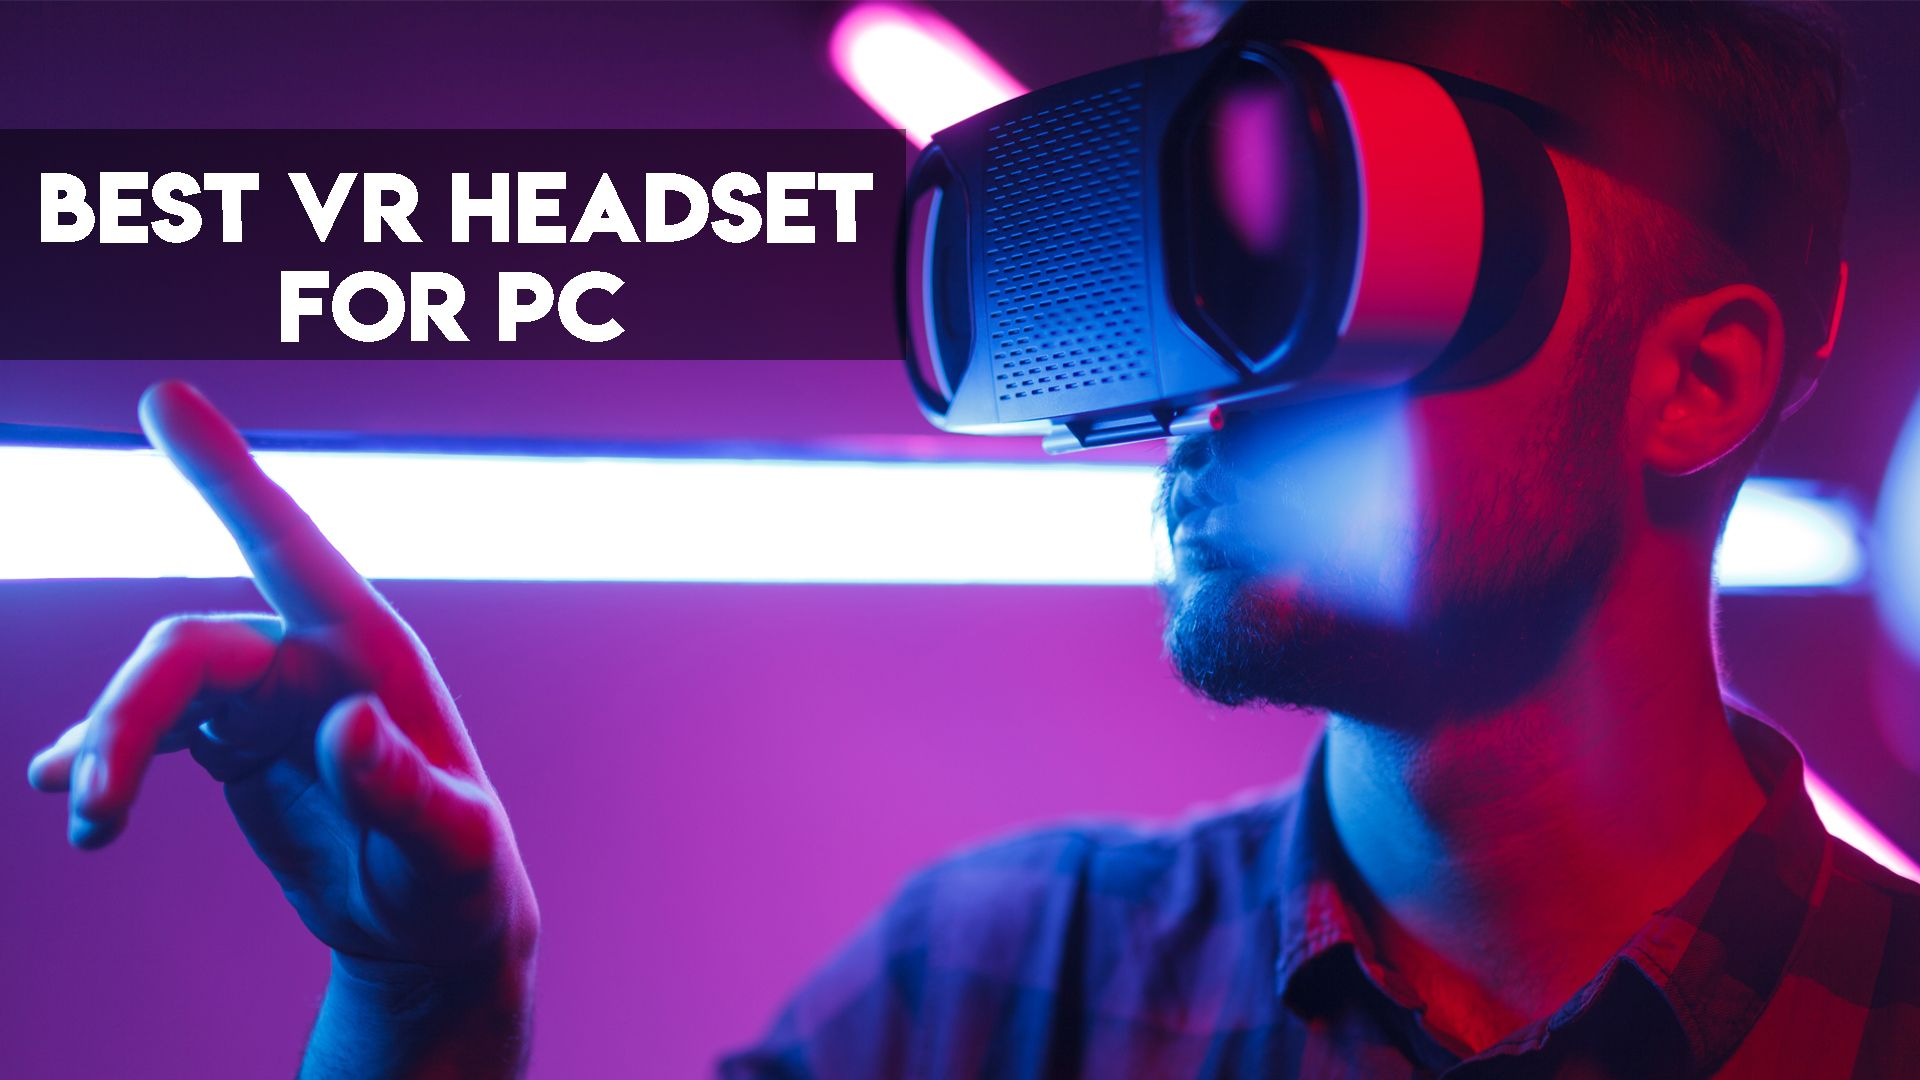 6 Best VR Headsets for PC in 2021